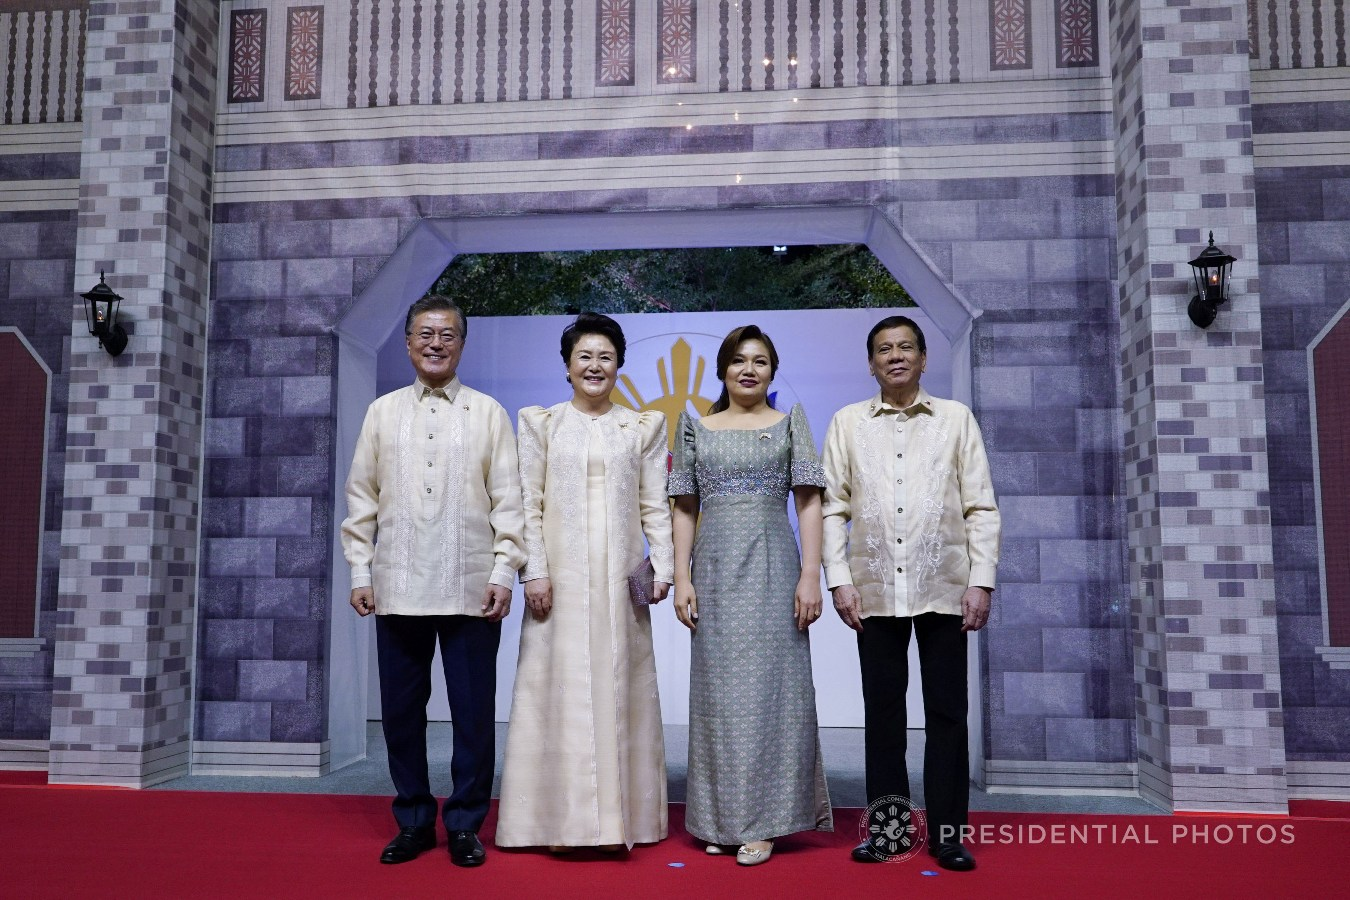 President Rodrigo Roa Duterte and his partner Honeylet pose for a photo with Republic of Korea President Moon Jae-in and his partner Kum Jung-Sook prior to the start of the gala dinner hosted by the Philippines for the leaders of the Association of Southeast Asian Nations (ASEAN) member states and dialogue partners at the SMX Convention Center in Pasay City on November 12, 2017. KING RODRIGUEZ/PRESIDENTIAL PHOTO